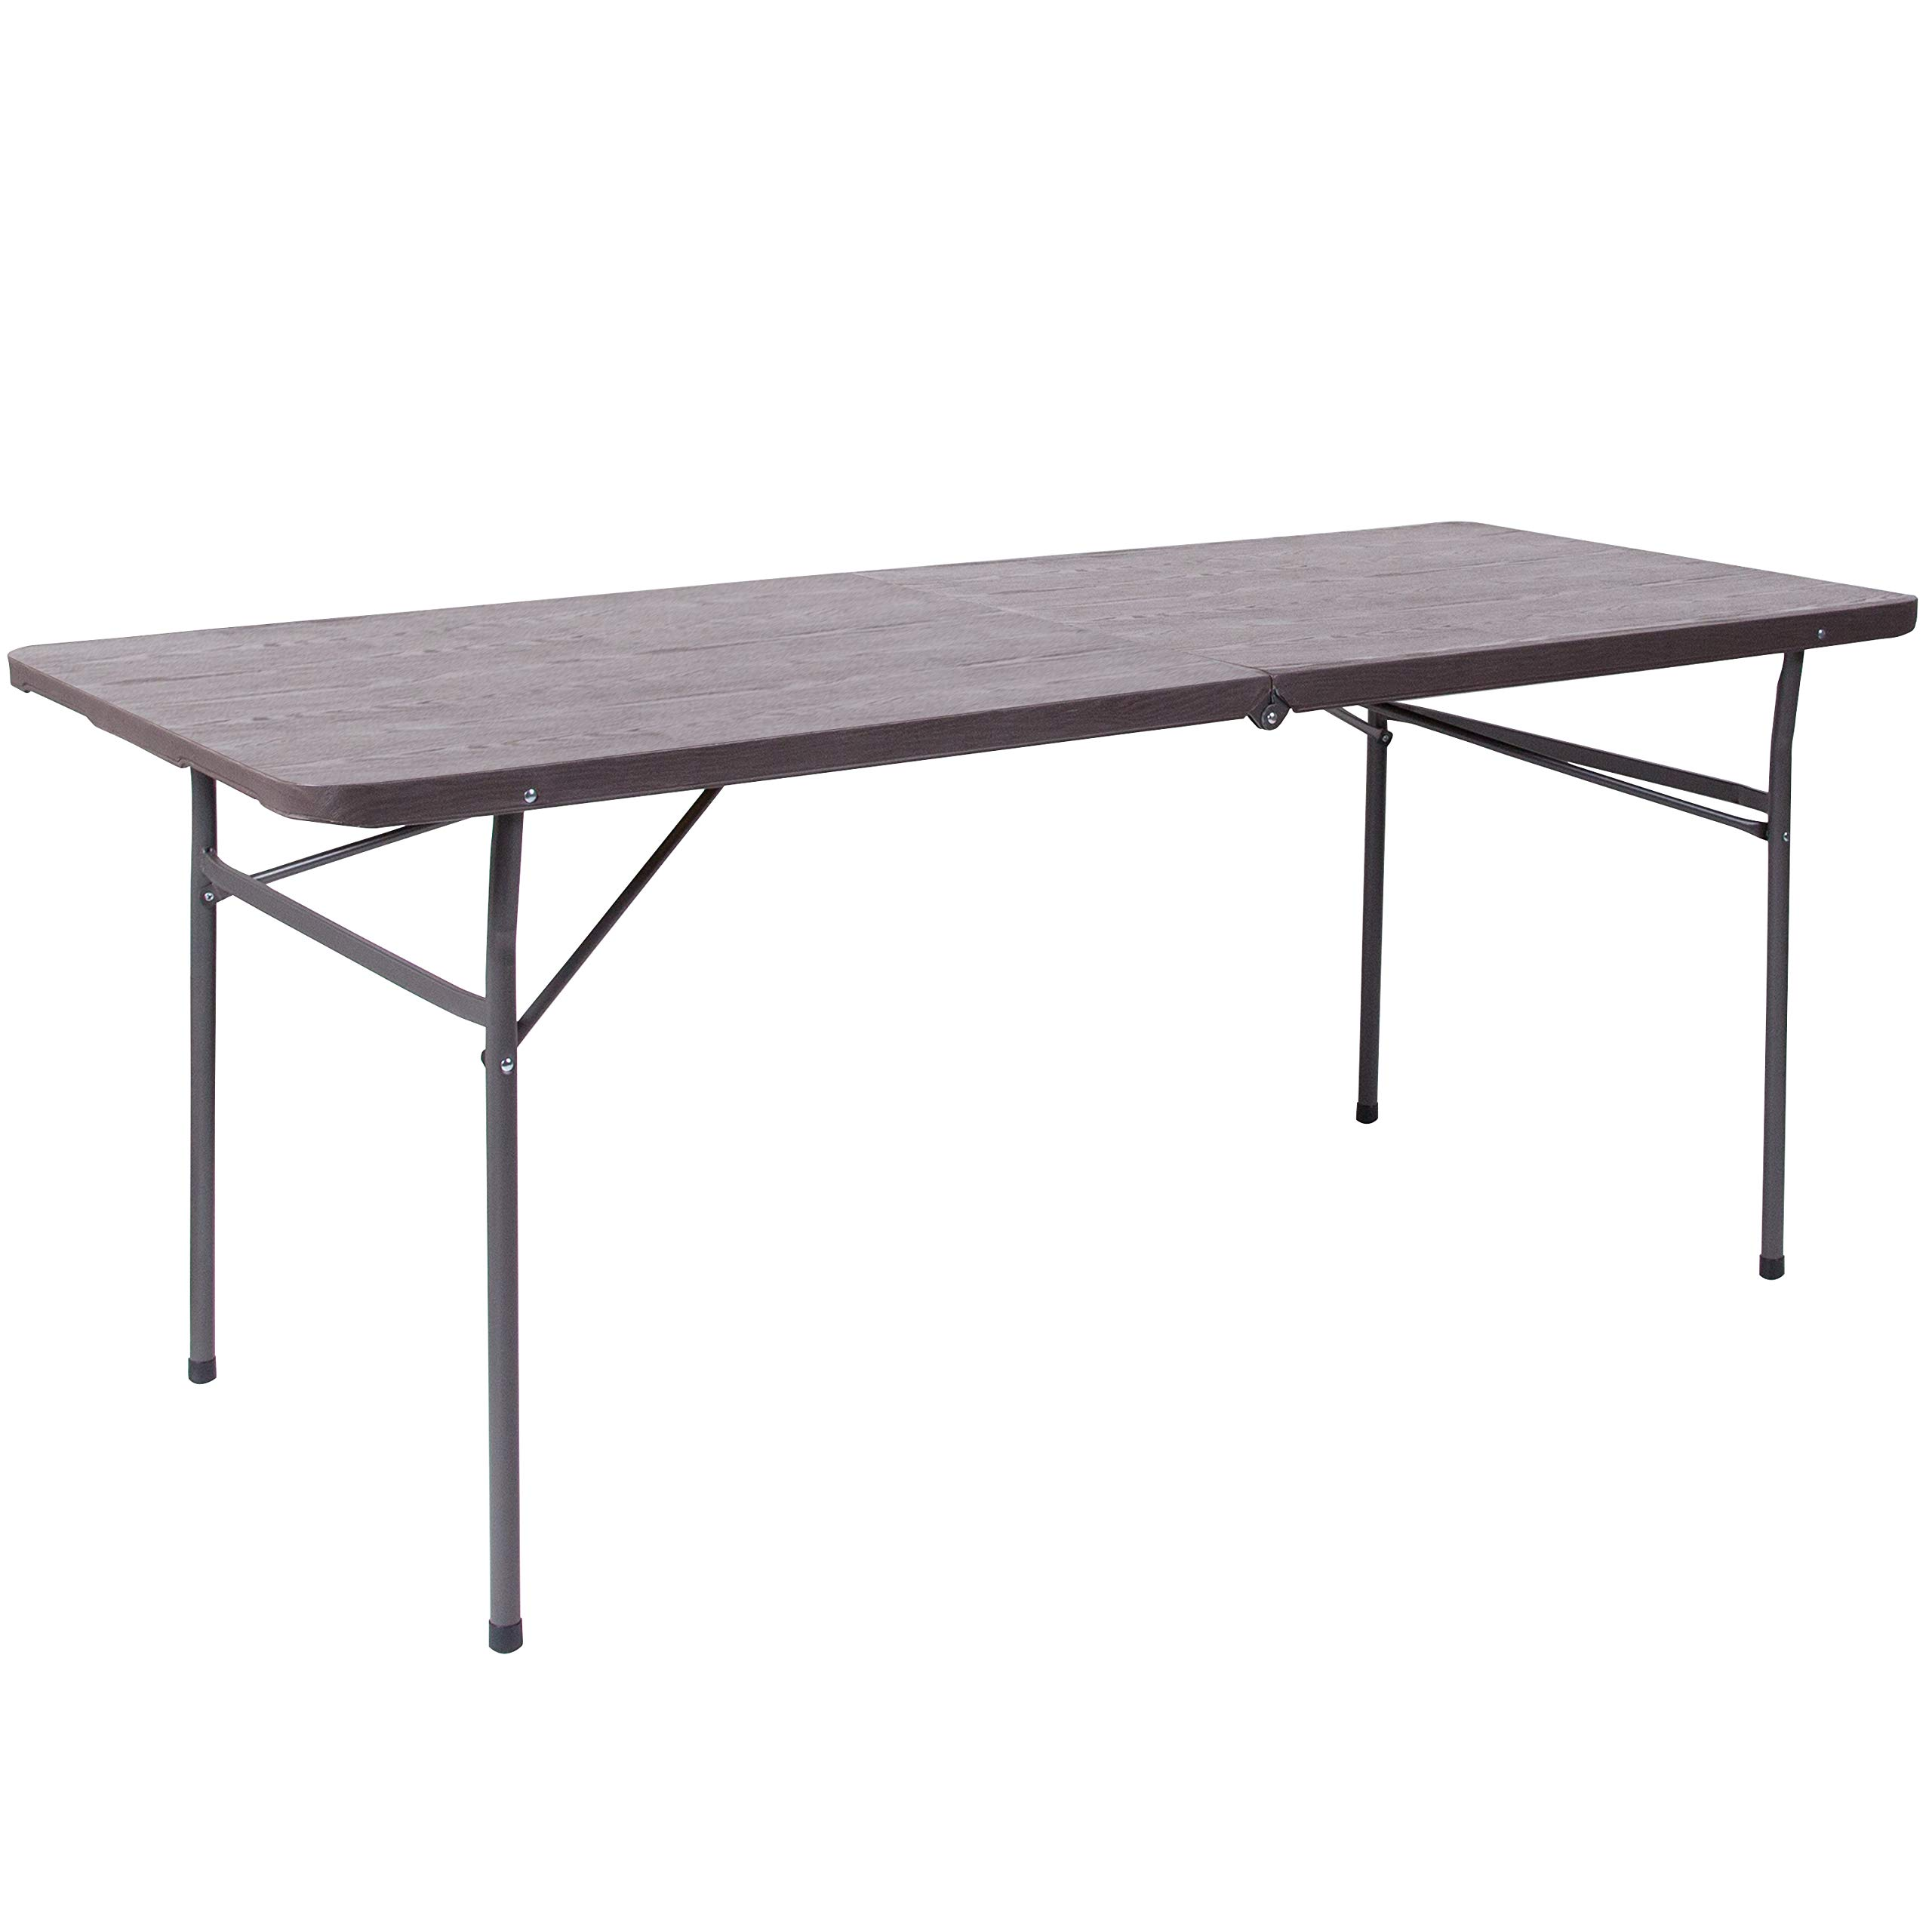 Flash Furniture 6-Foot Bi-Fold Brown Wood Grain Plastic Folding Table with Carrying Handle by Flash Furniture